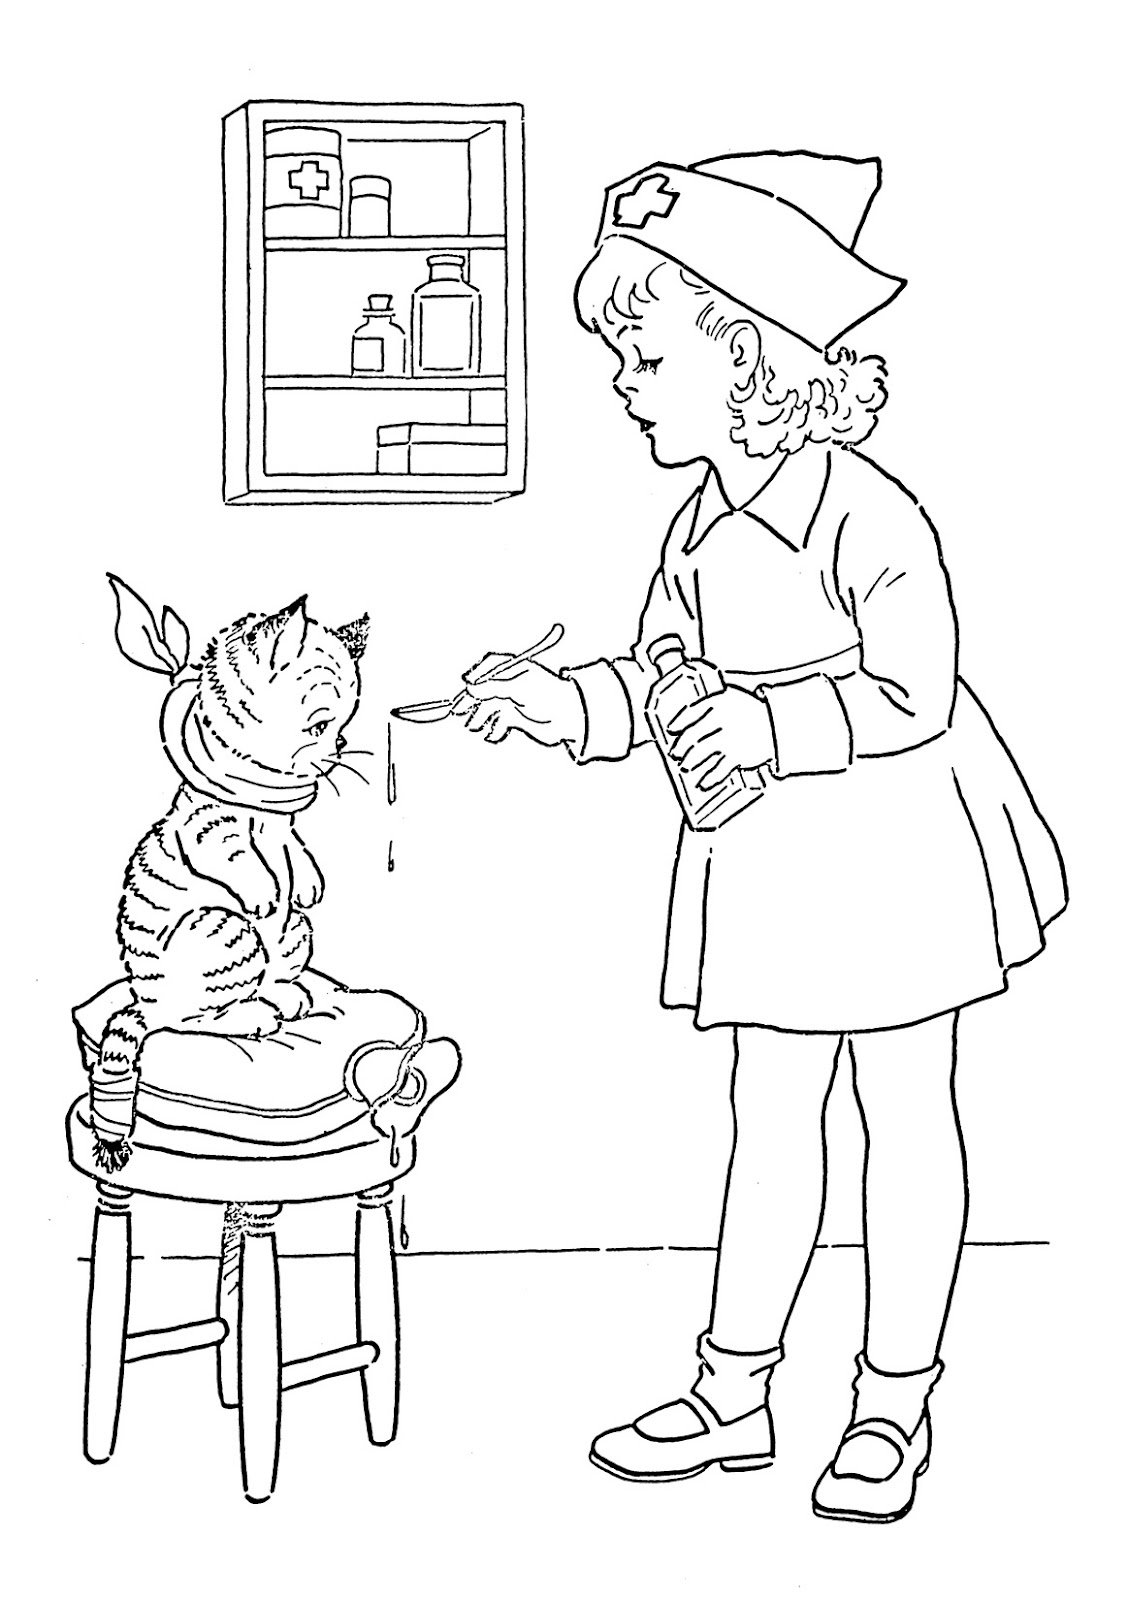 kids art coloring pages kids art coloring pages coloring kids pages art